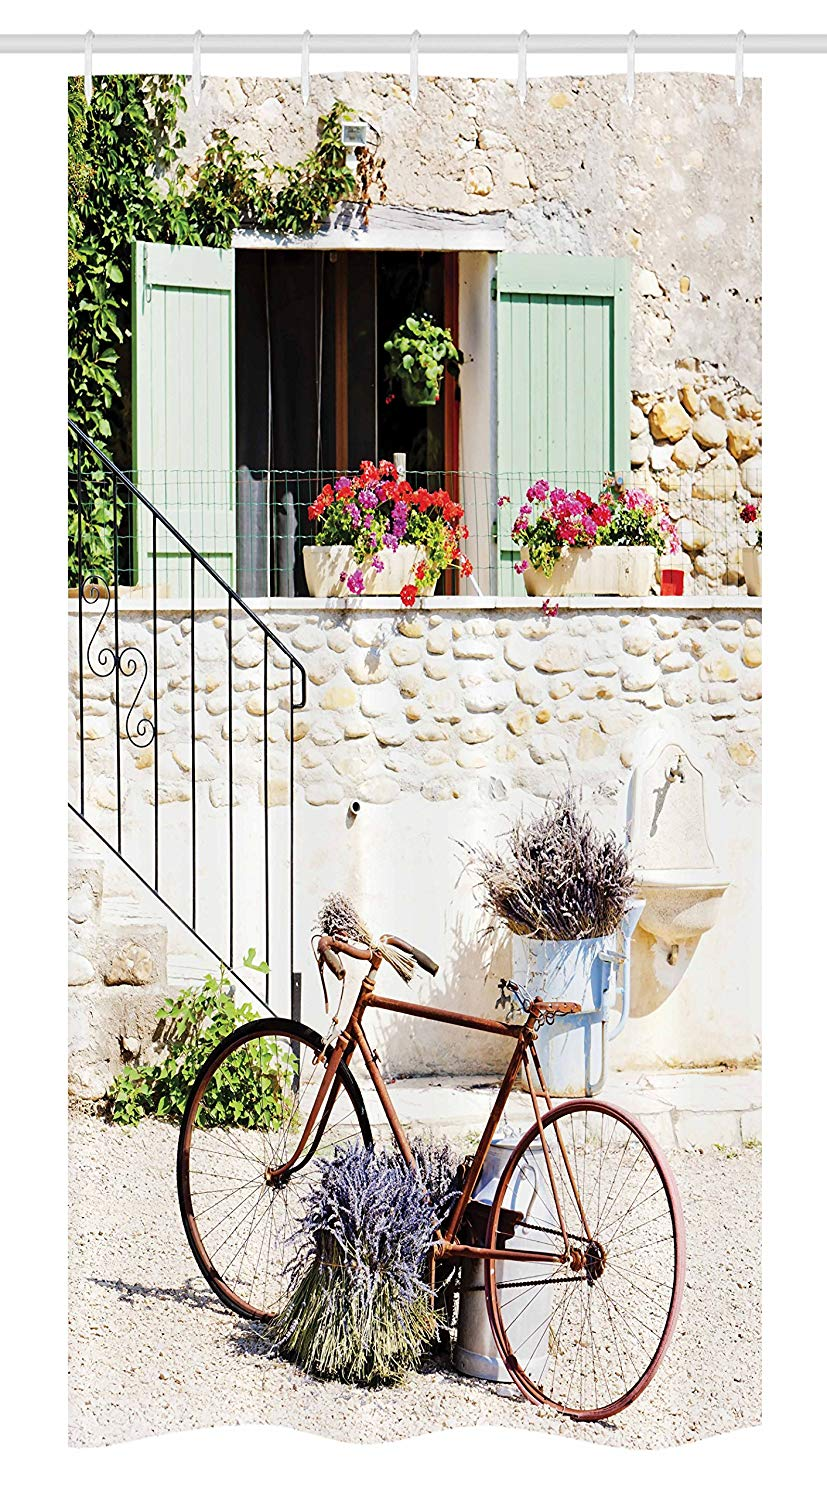 "Ambesonne Bicycle Stall Shower Curtain, European French Mediterranean Rural Stone House with Bike Countryside Provence Day, Fabric Bathroom Decor Set with Hooks, 36"" X 72"", Multicolor"